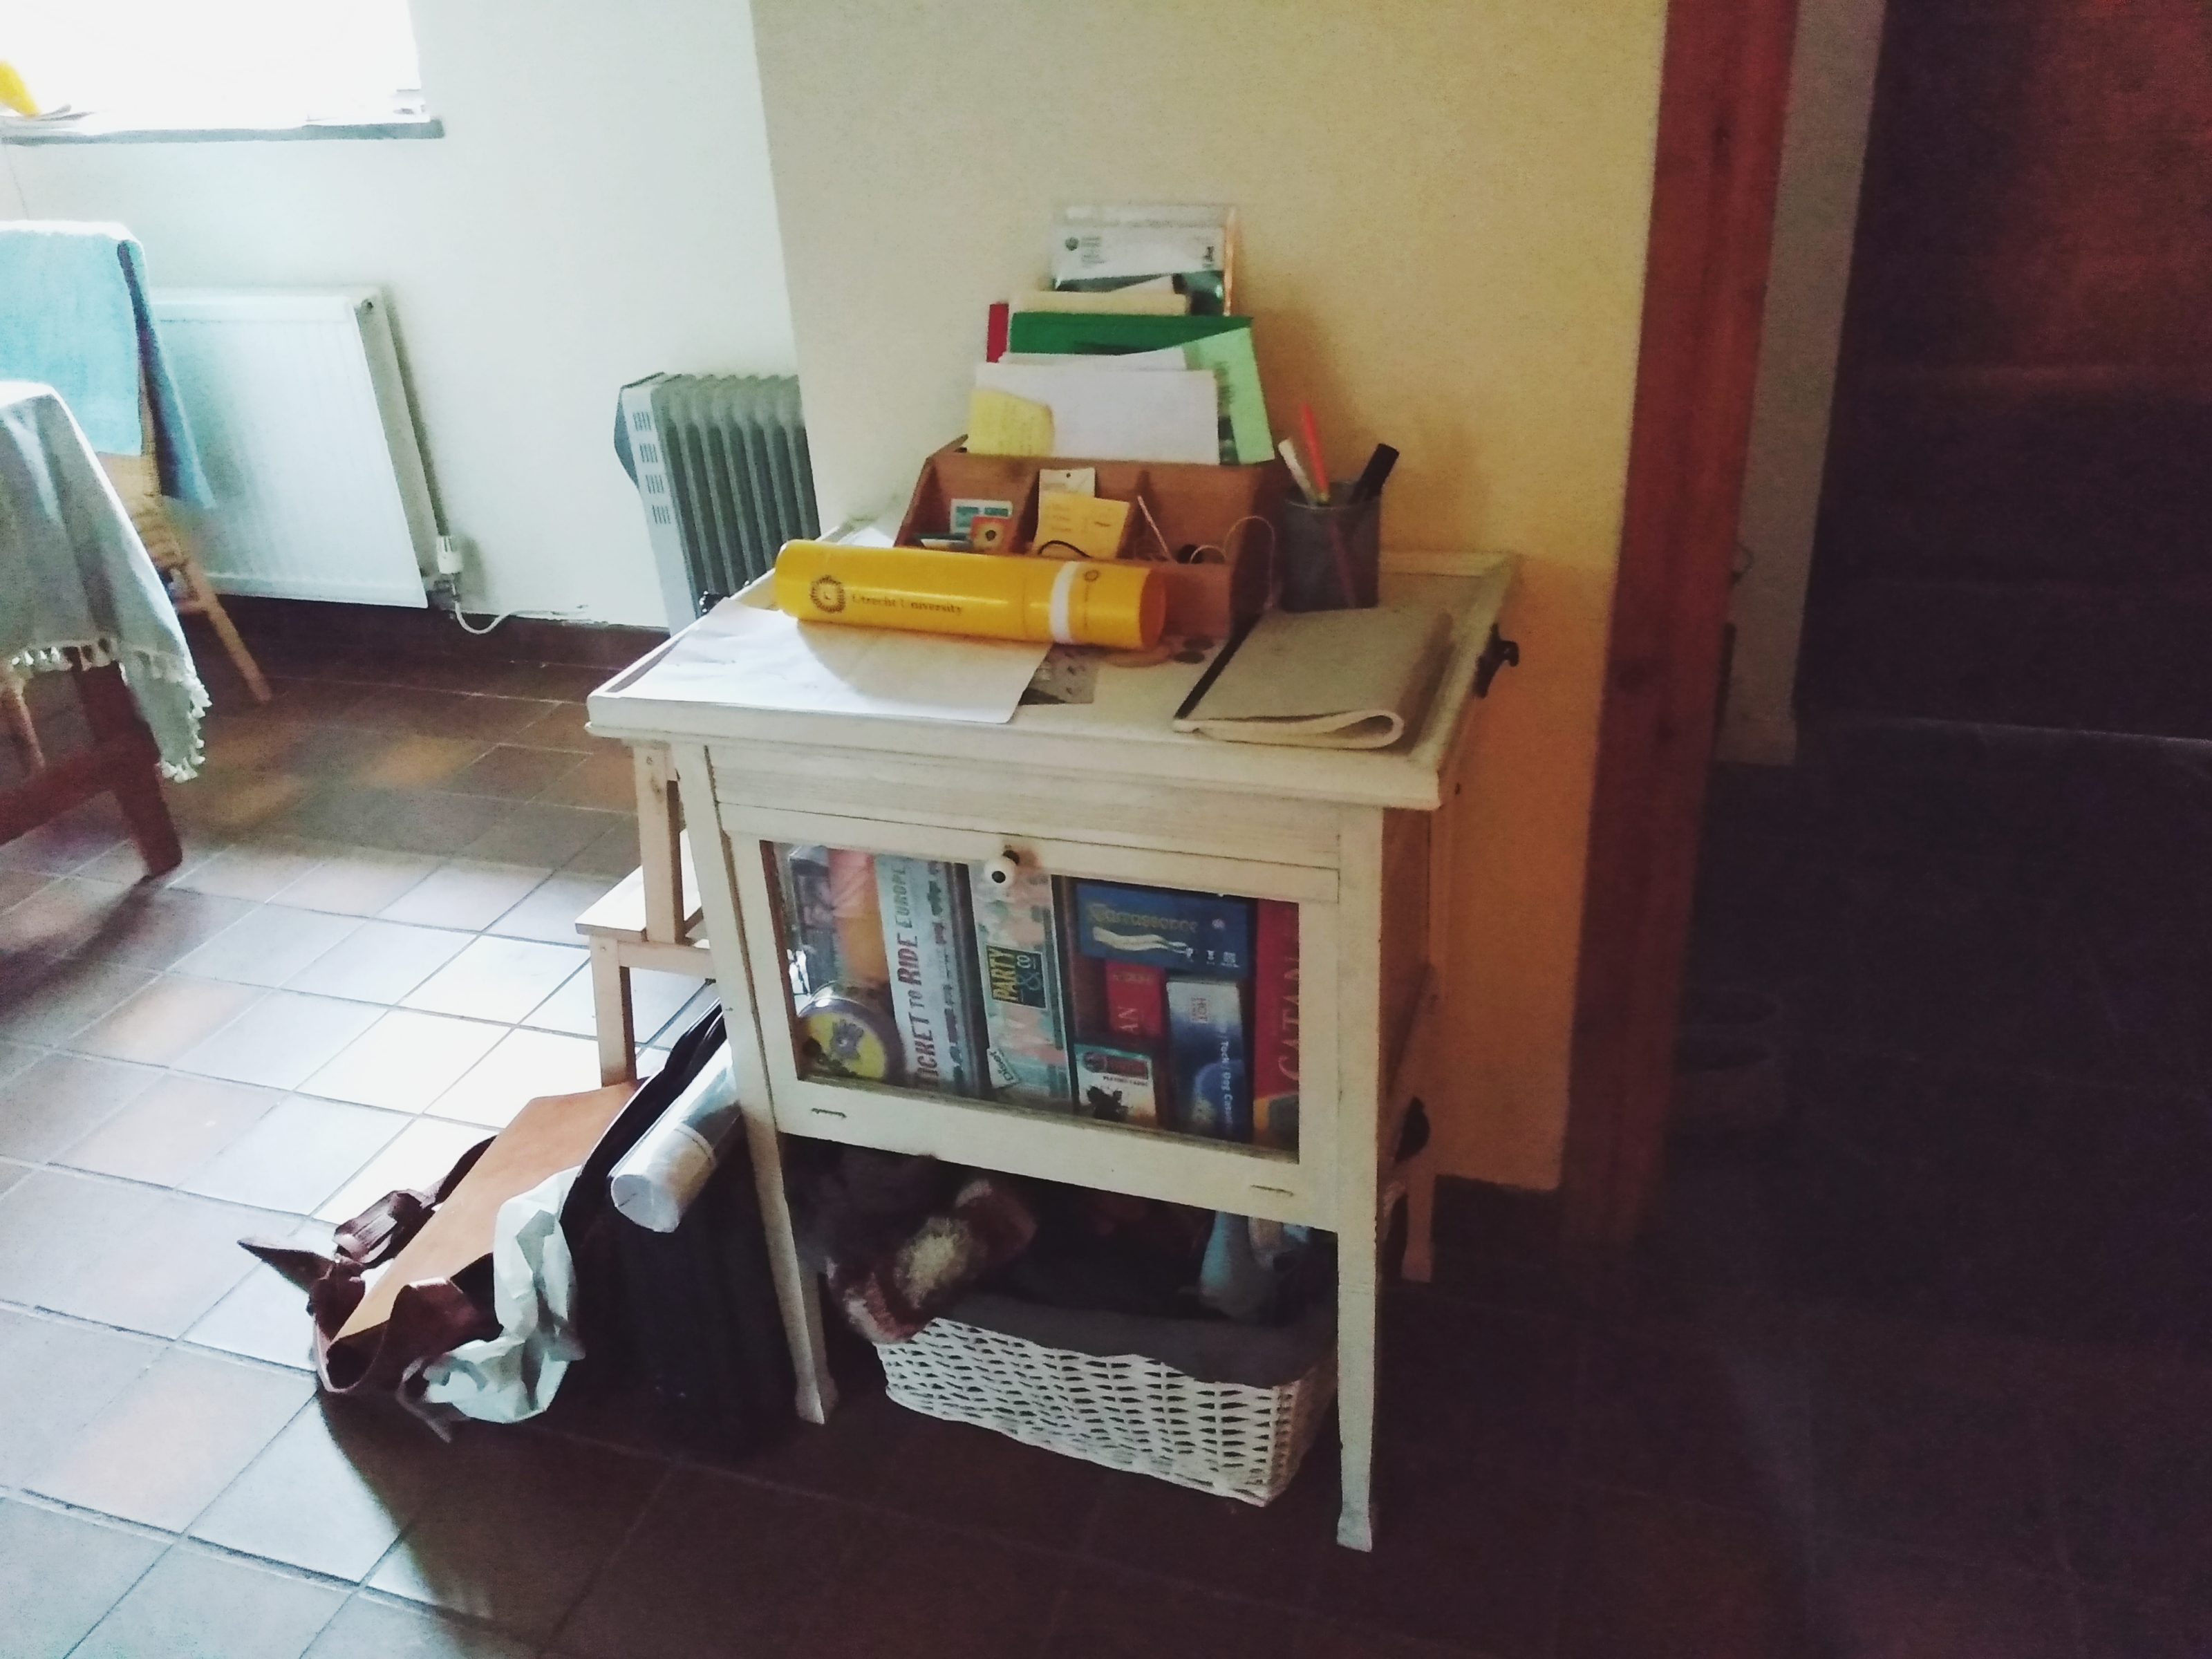 Repurposing a Vintage French Tray Table by a Hopeful Home. The vintage French tray table before repurposing.